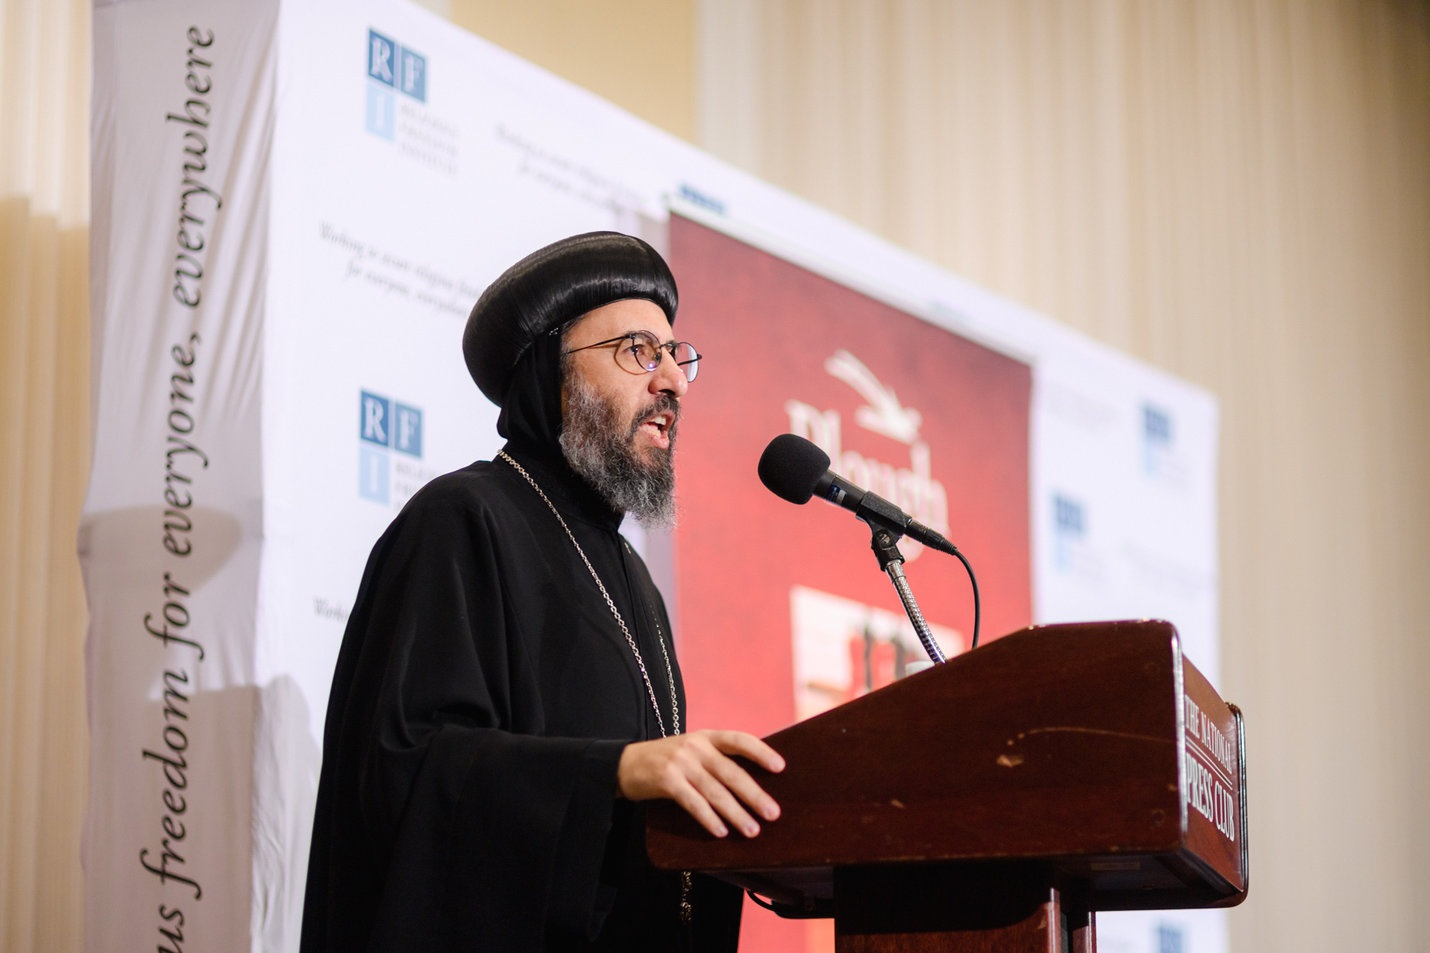 Archbishop Angaelos, Coptic Orthodox Archbishop of London, delivers a keynote address on the impact of the 21 martyrs four years after they were killed in Libya.